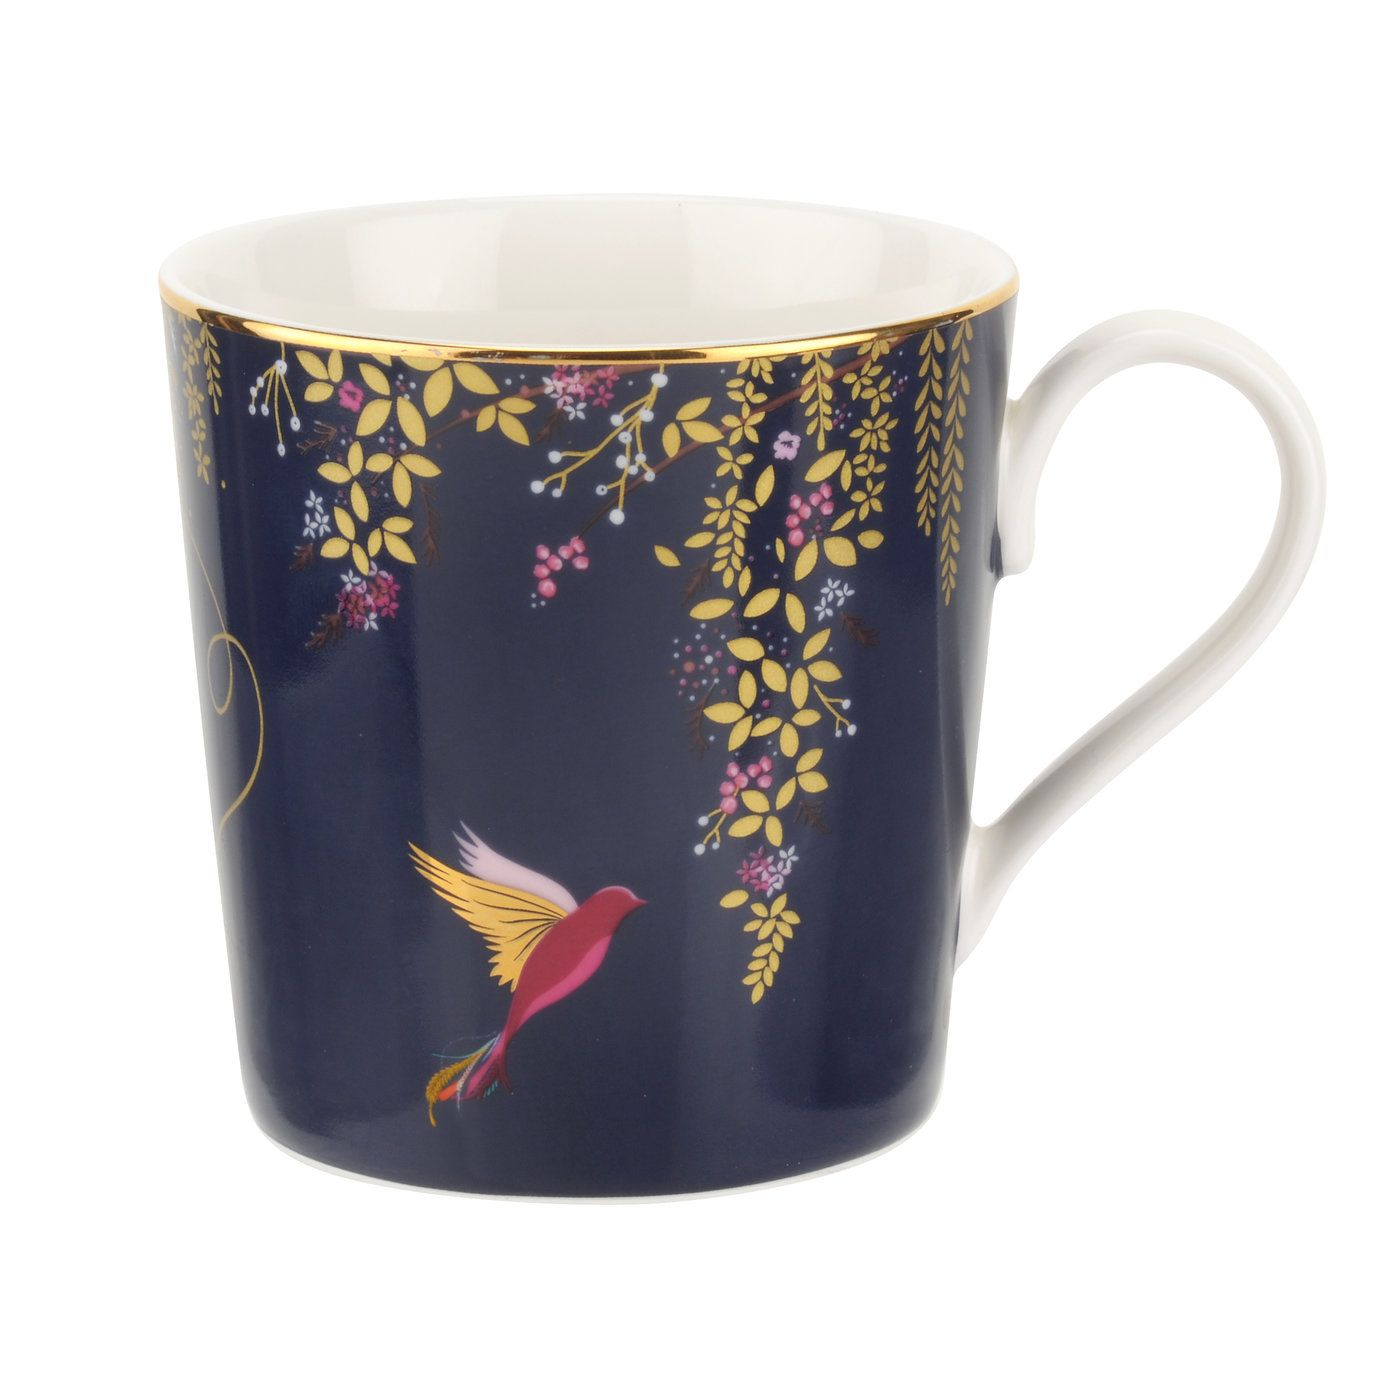 Gift ideas for Mother's Day - mug